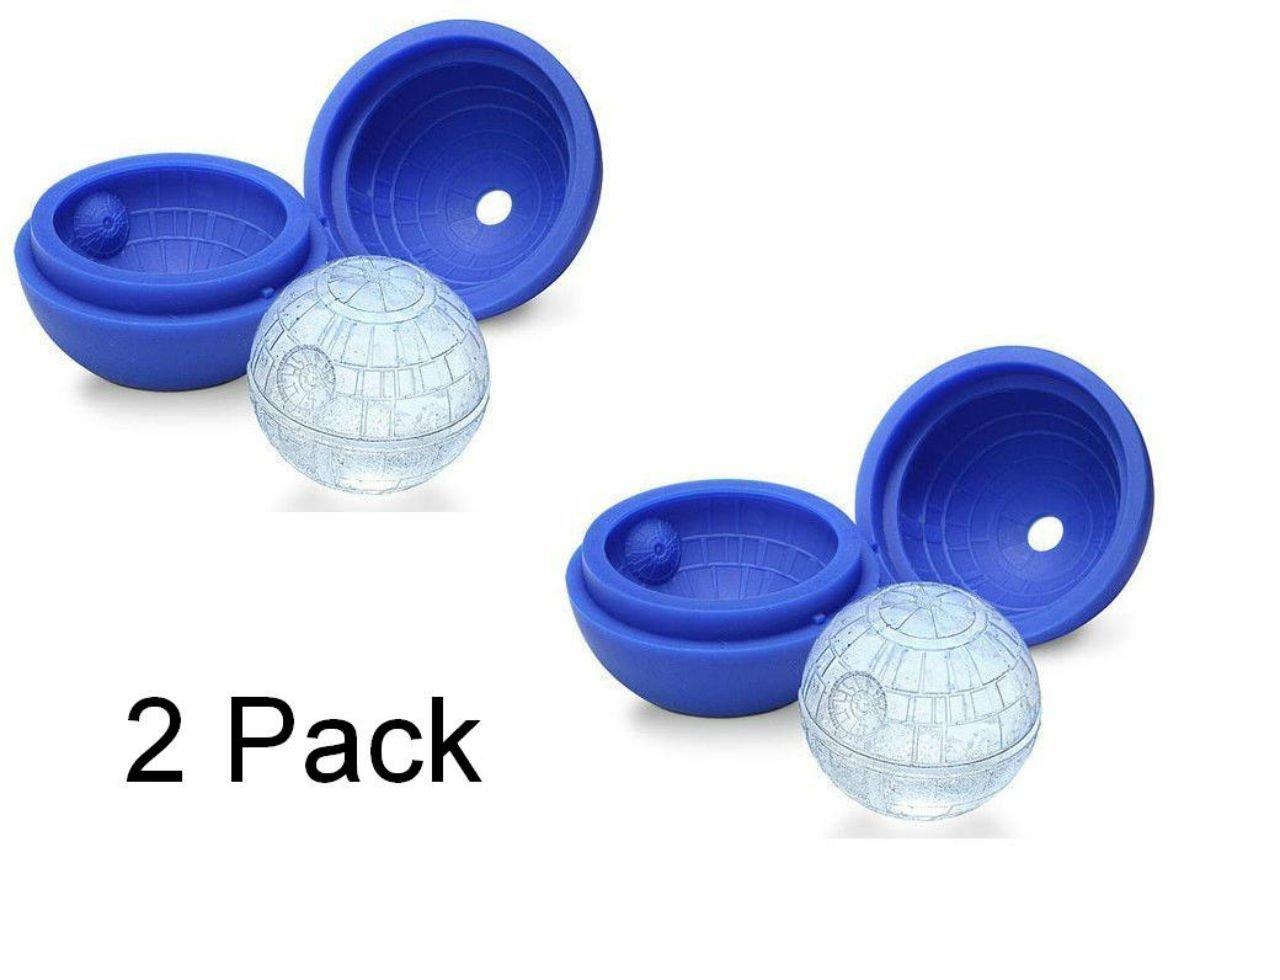 Cherion Pack of 2 Star Wars Death Star Silicone Ice Cube Molds by Cherion